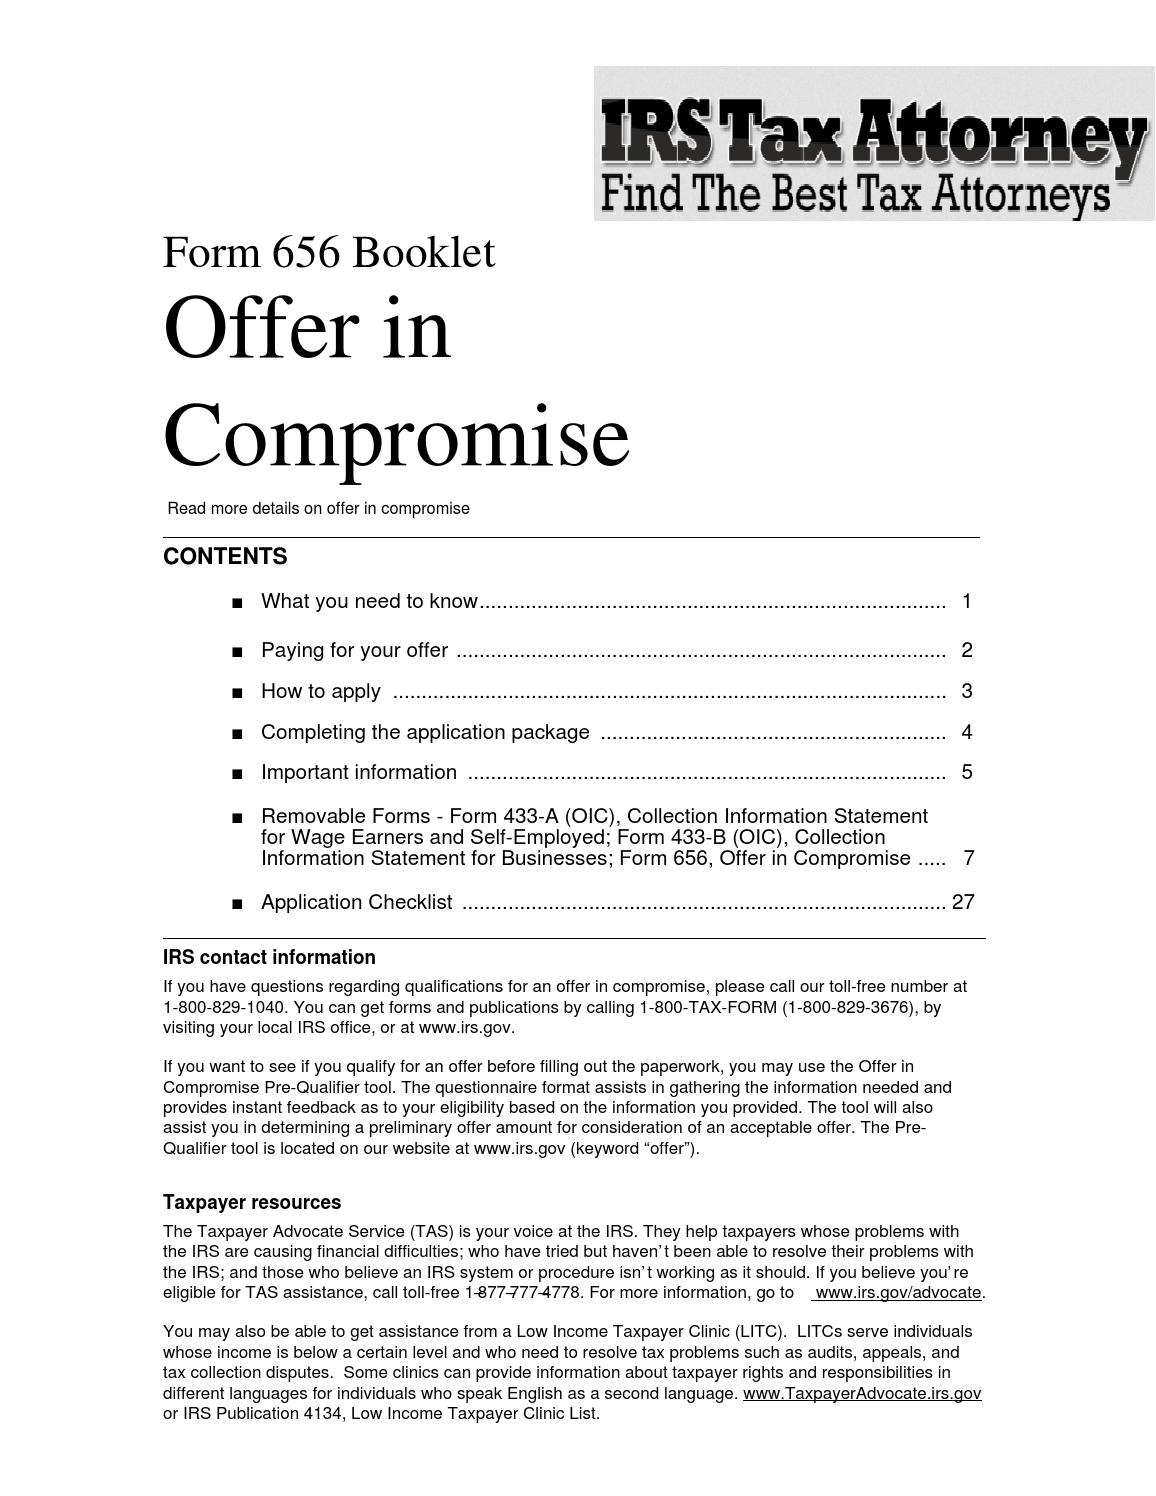 How to find your best IRS Tax Attorney? by Christa Jocelyn - issuu